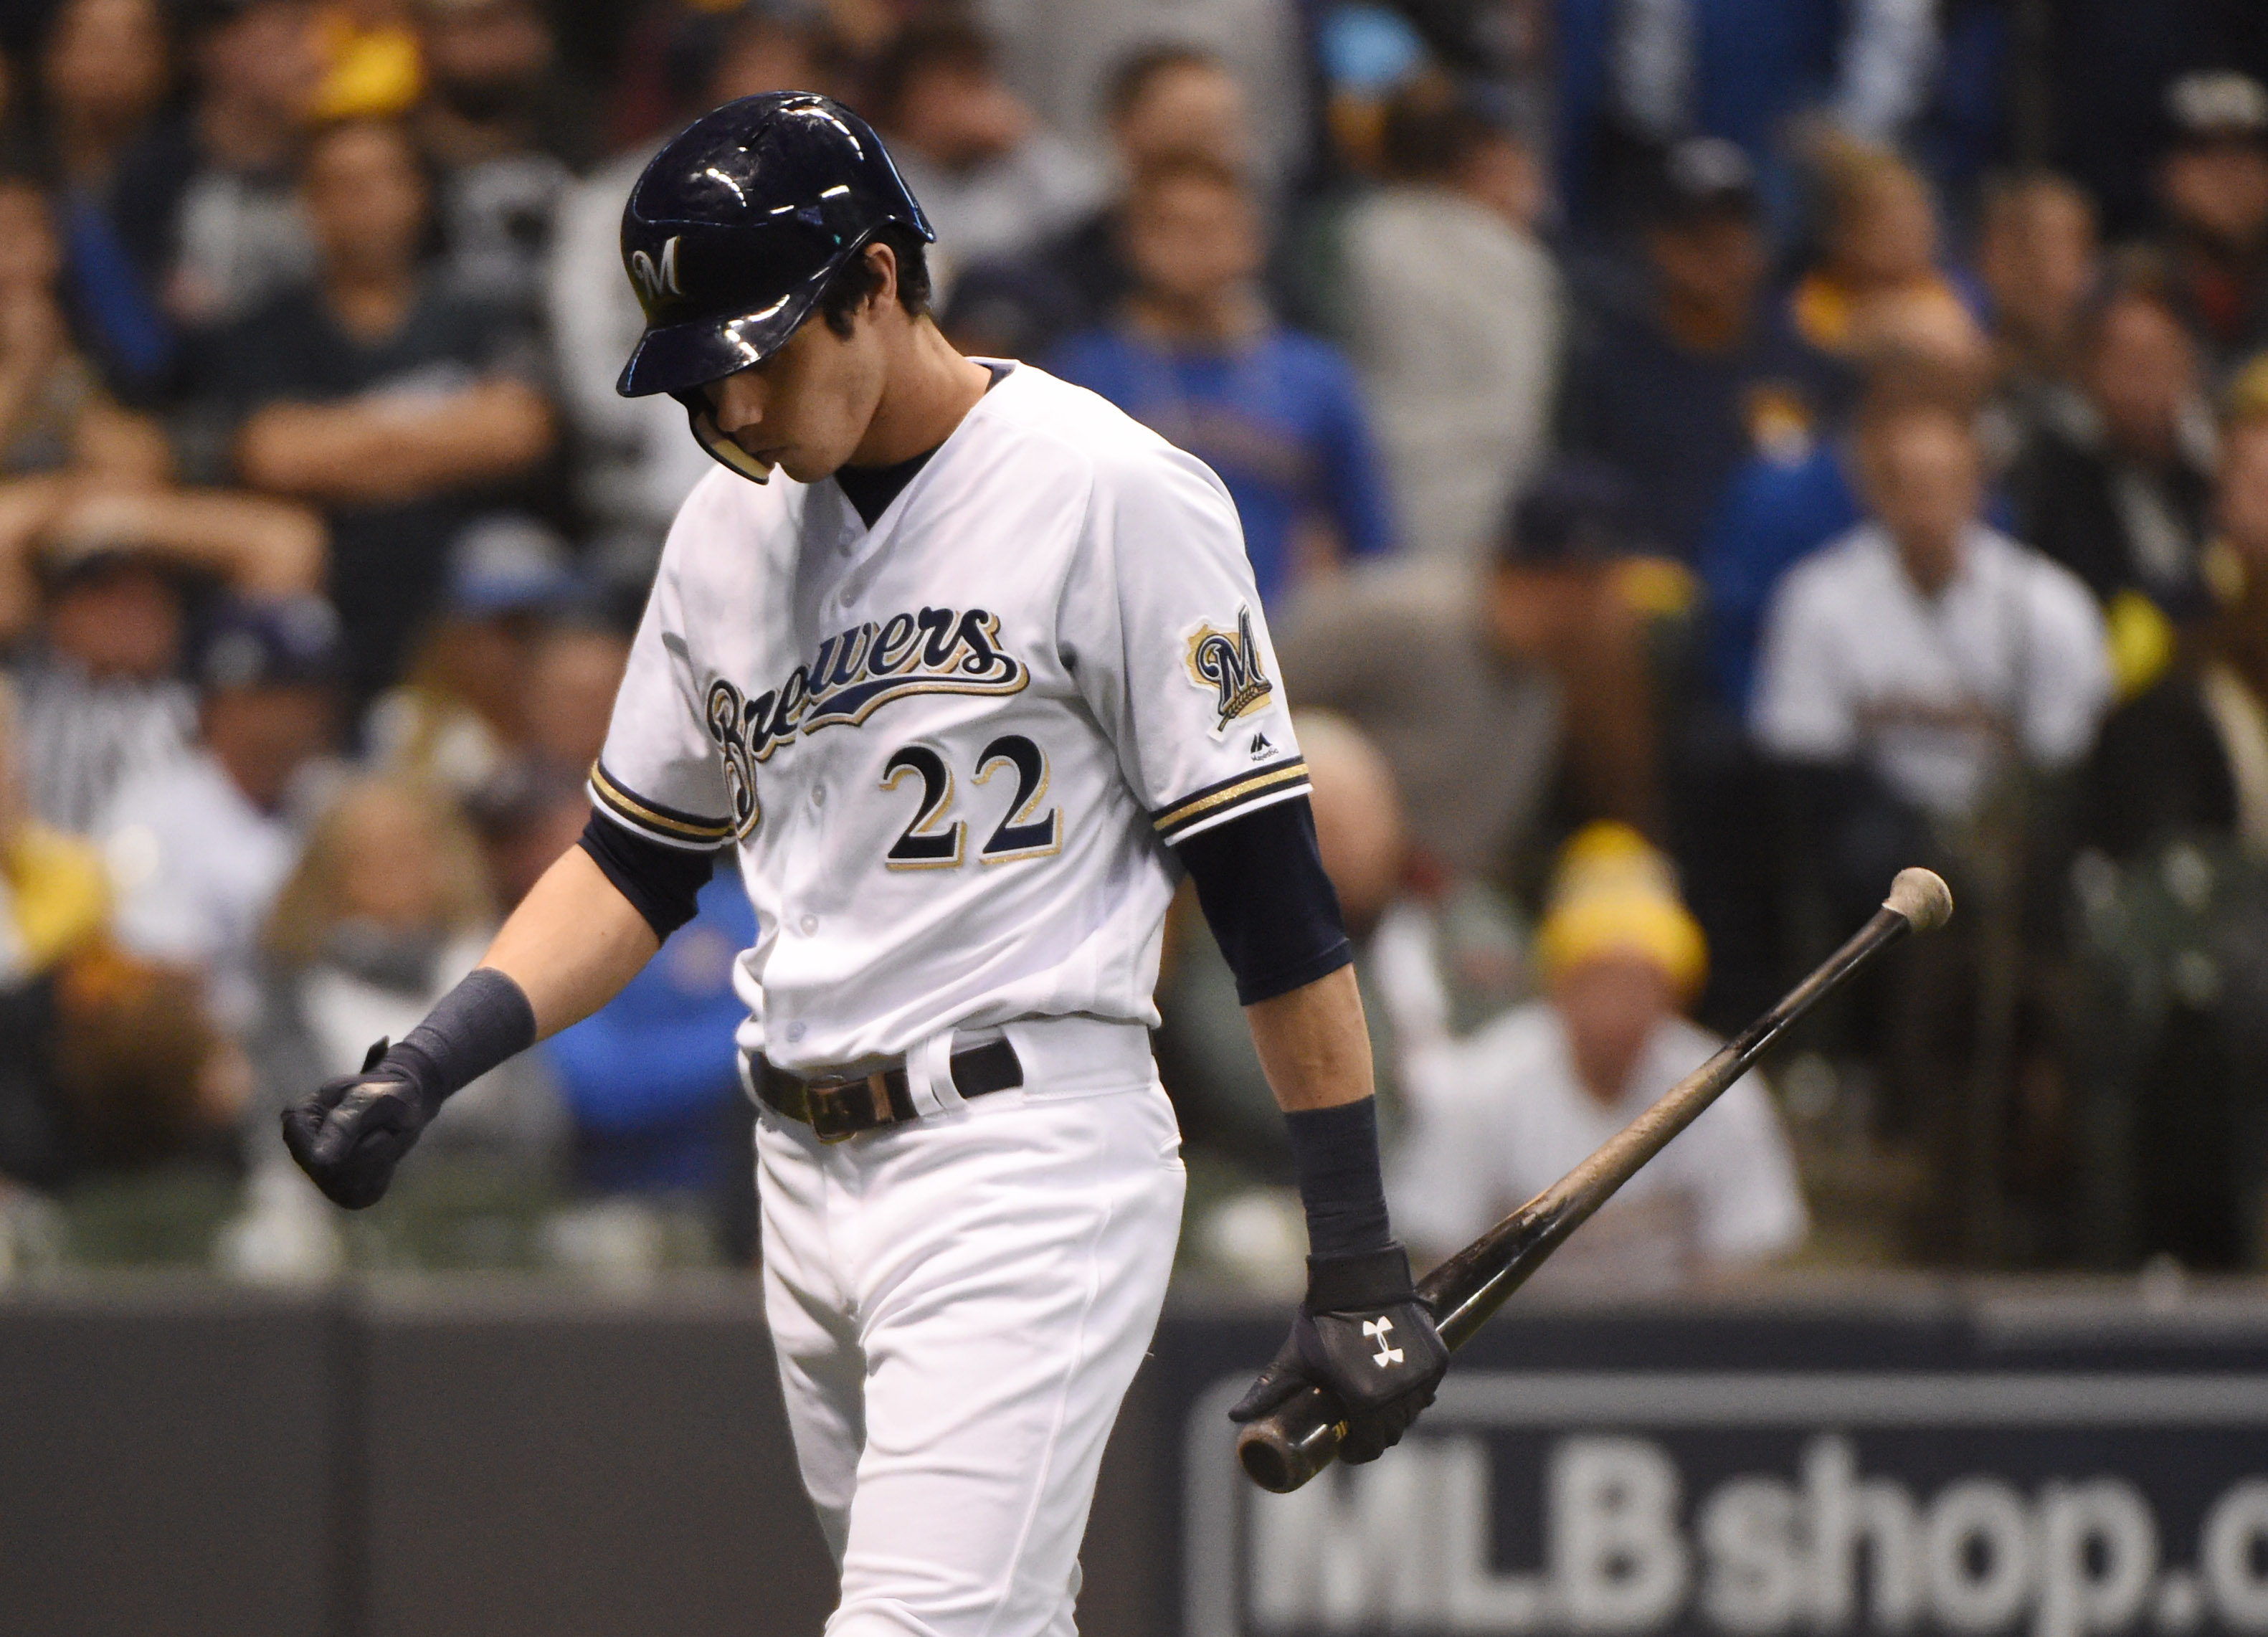 Christian Yelich all but disappeared in the NLCS